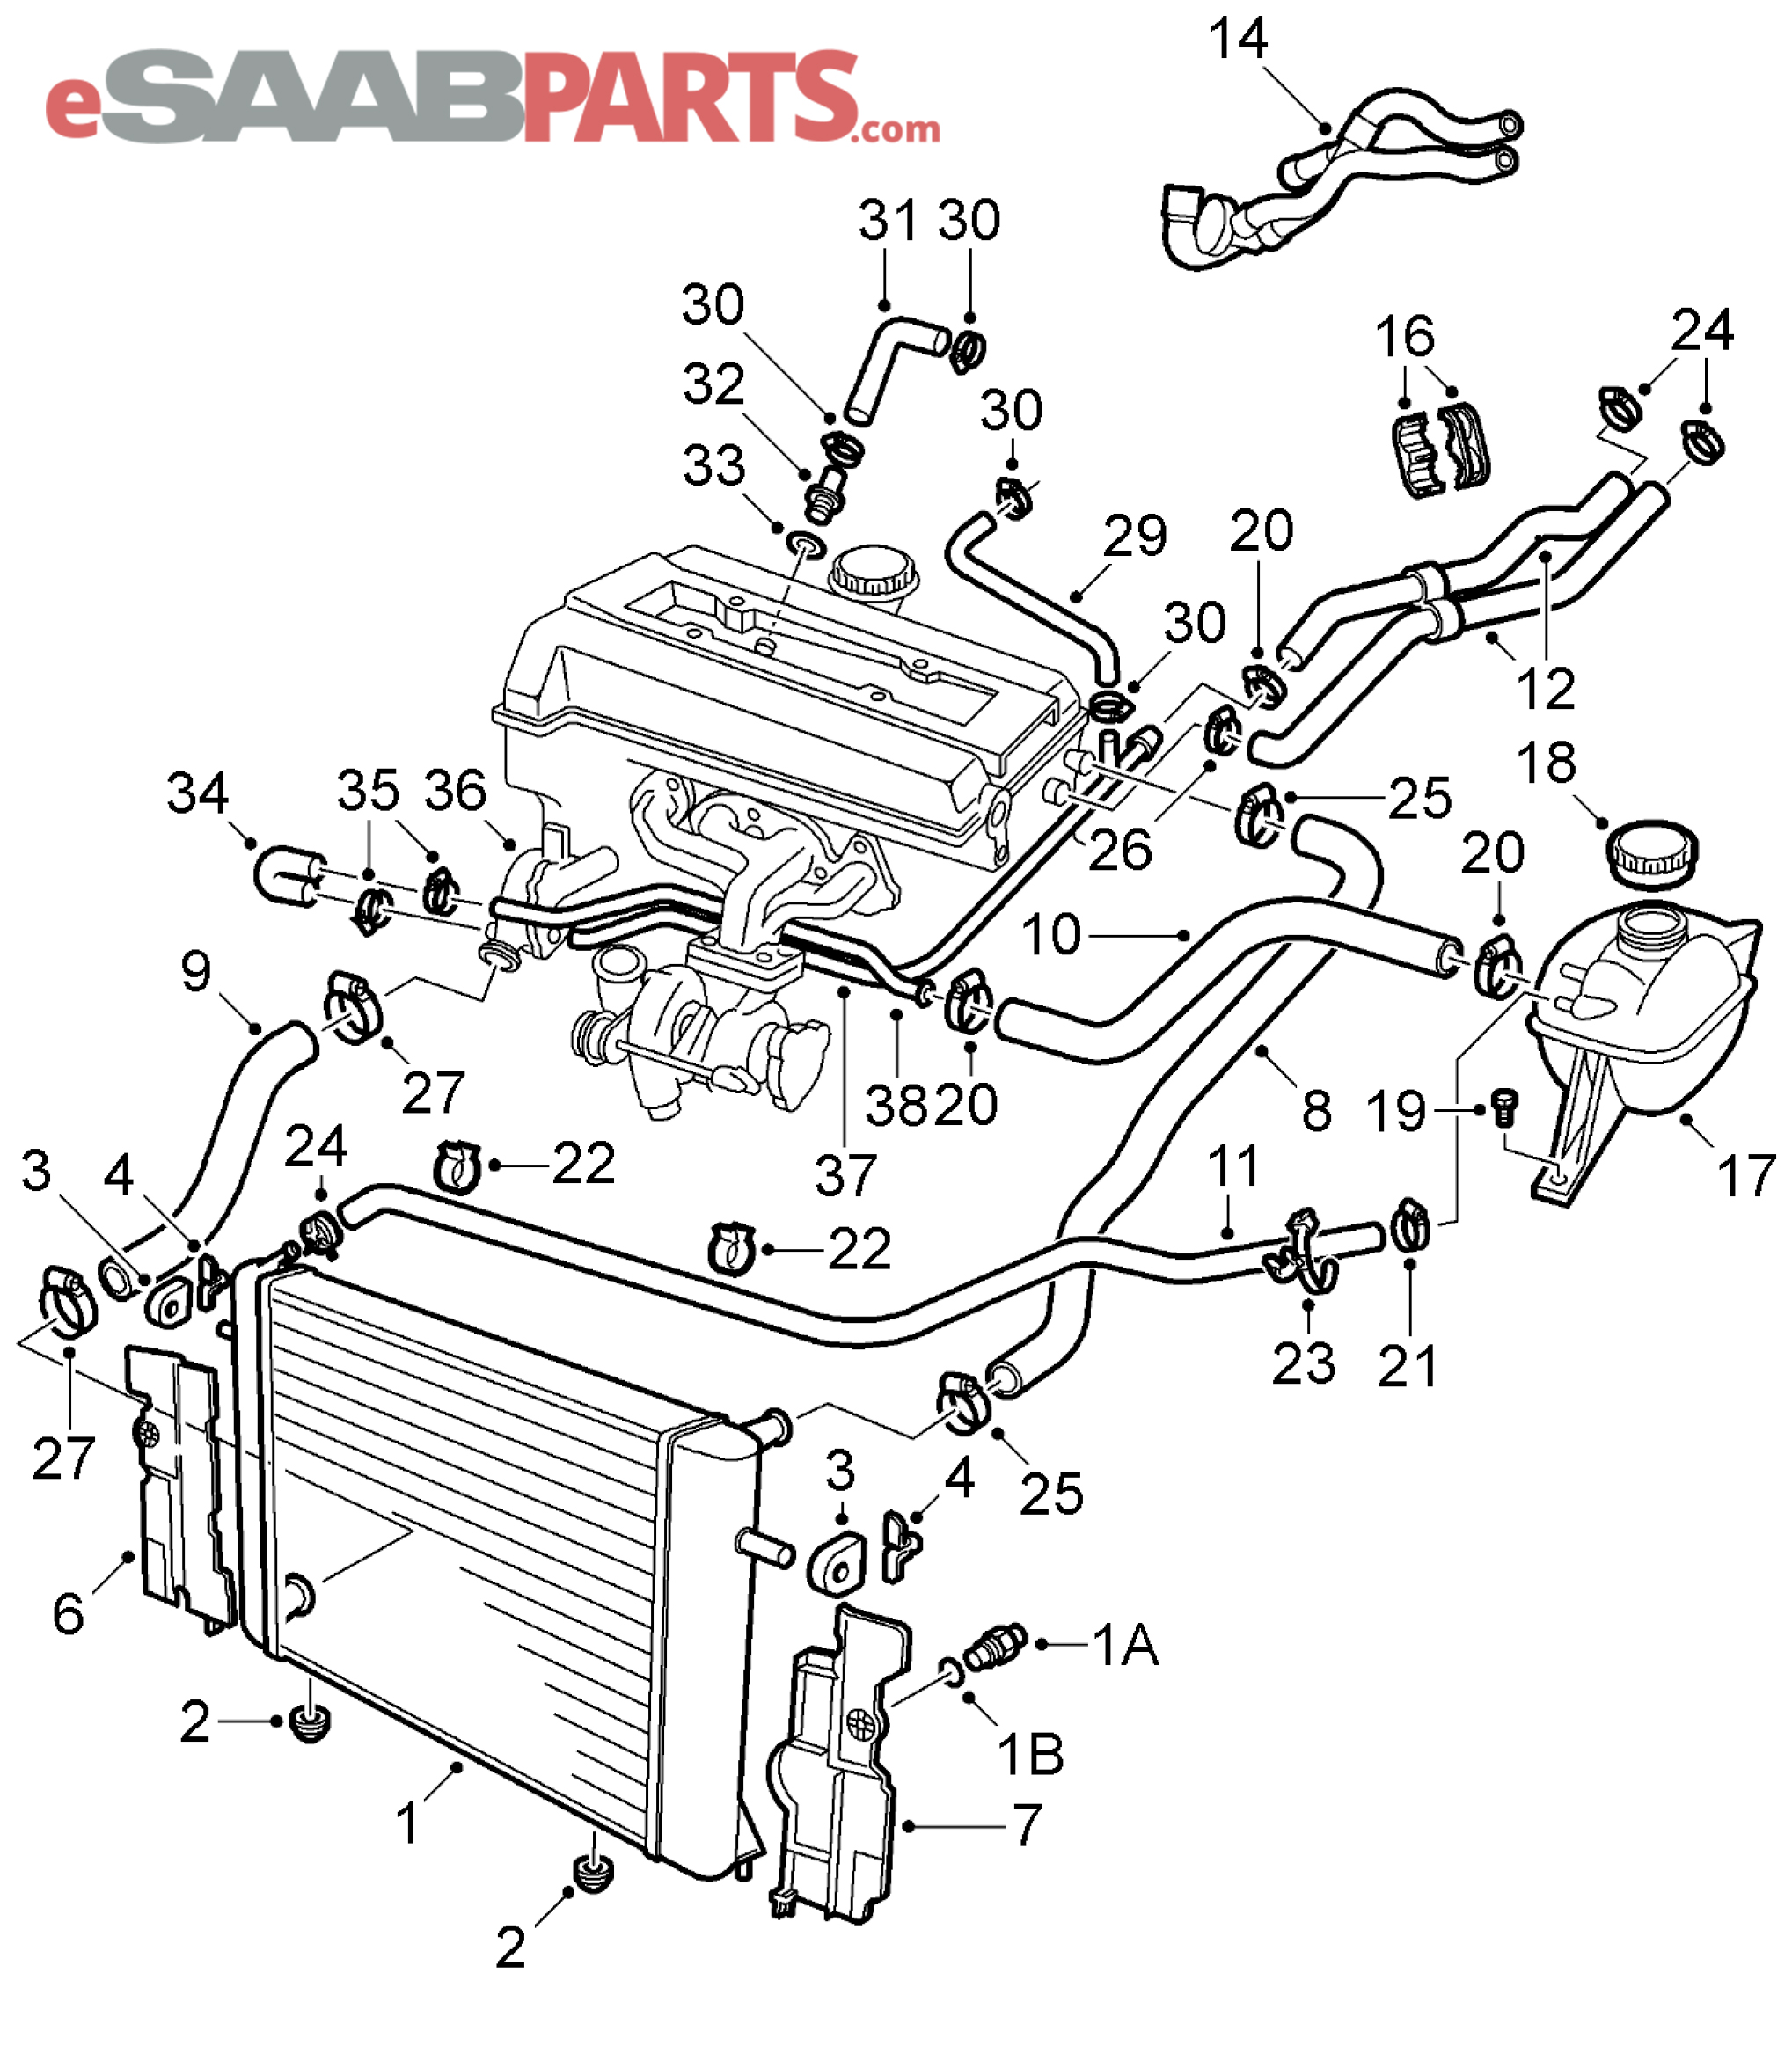 1990 saab 900 engine diagram wiring diagram 2003 saab 9-3 turbo saab 9000 parts esaabparts com